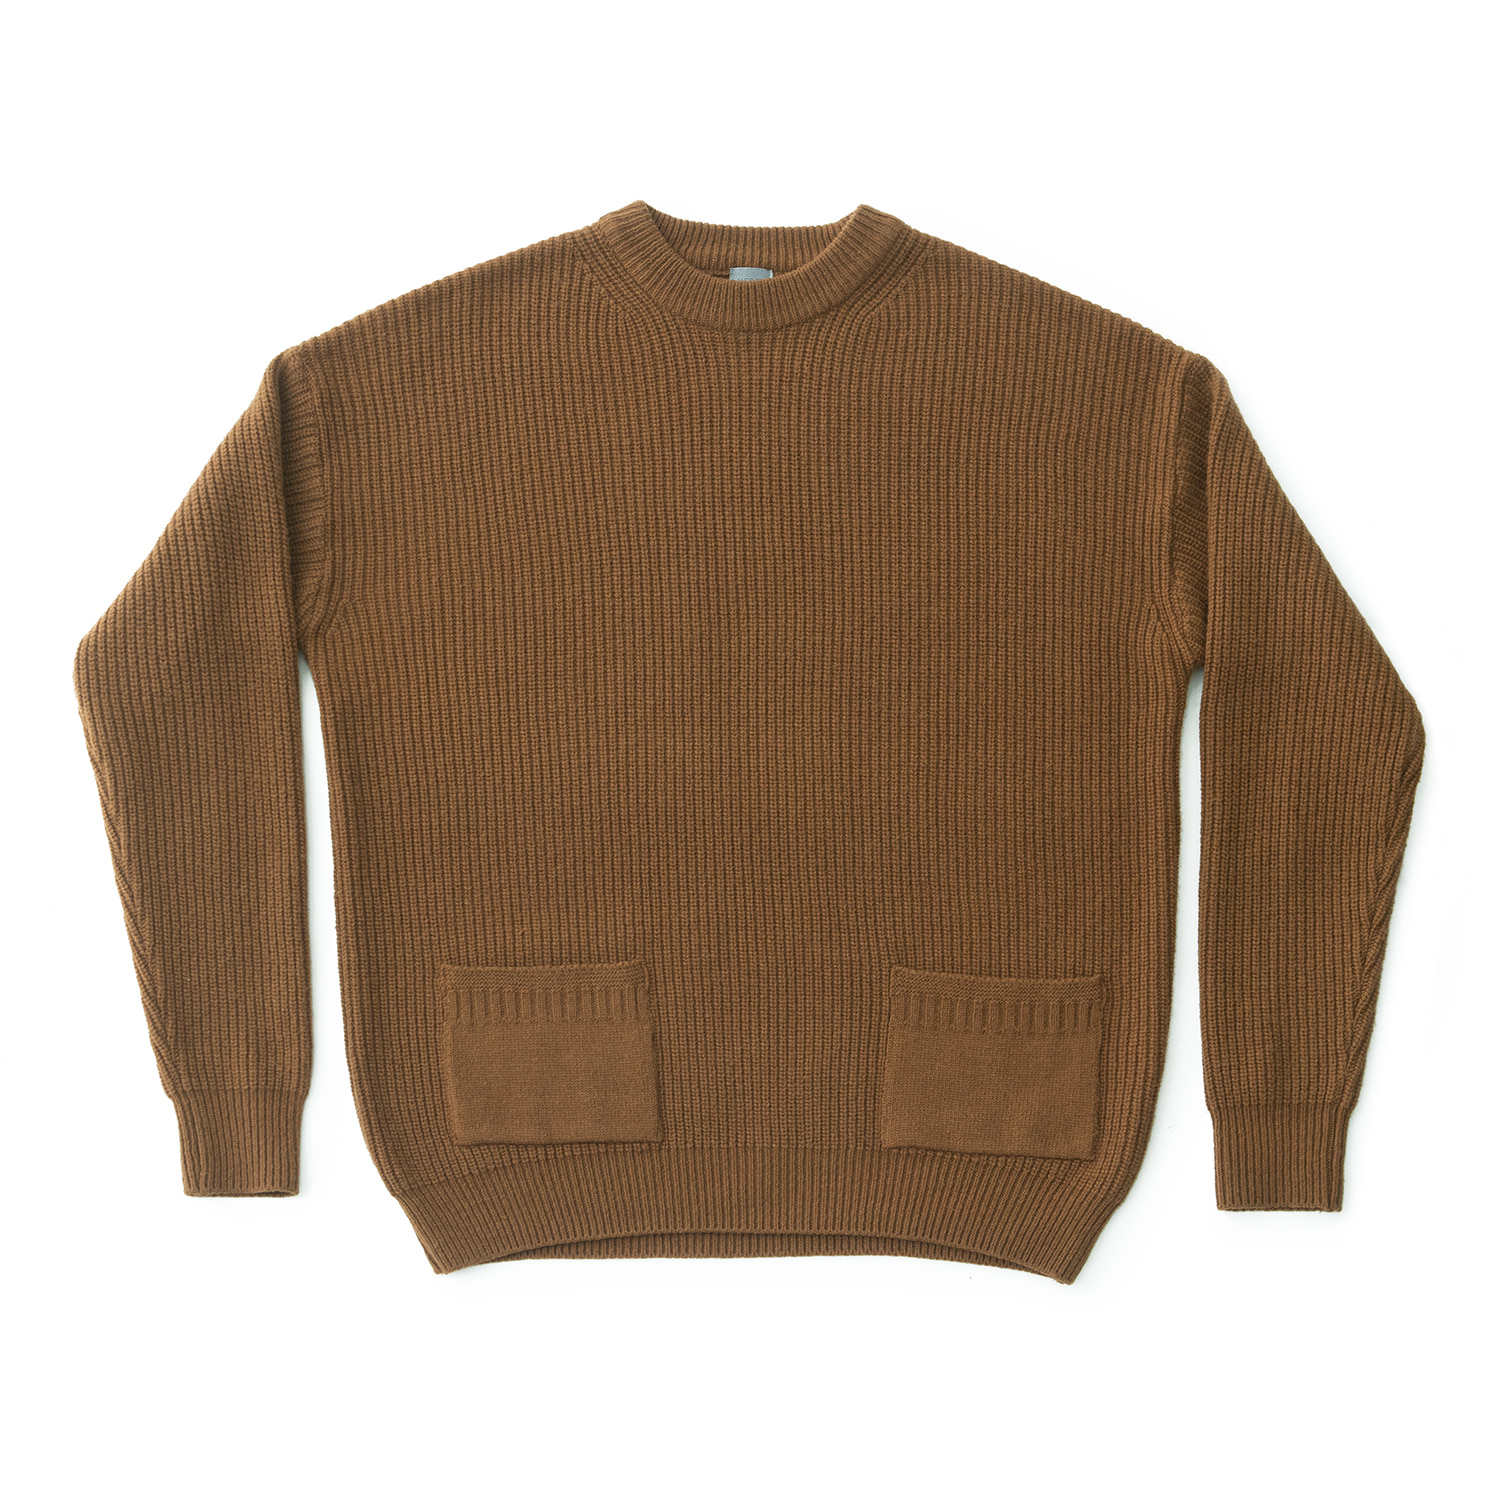 Ample Knit Pullover (Chestnut)